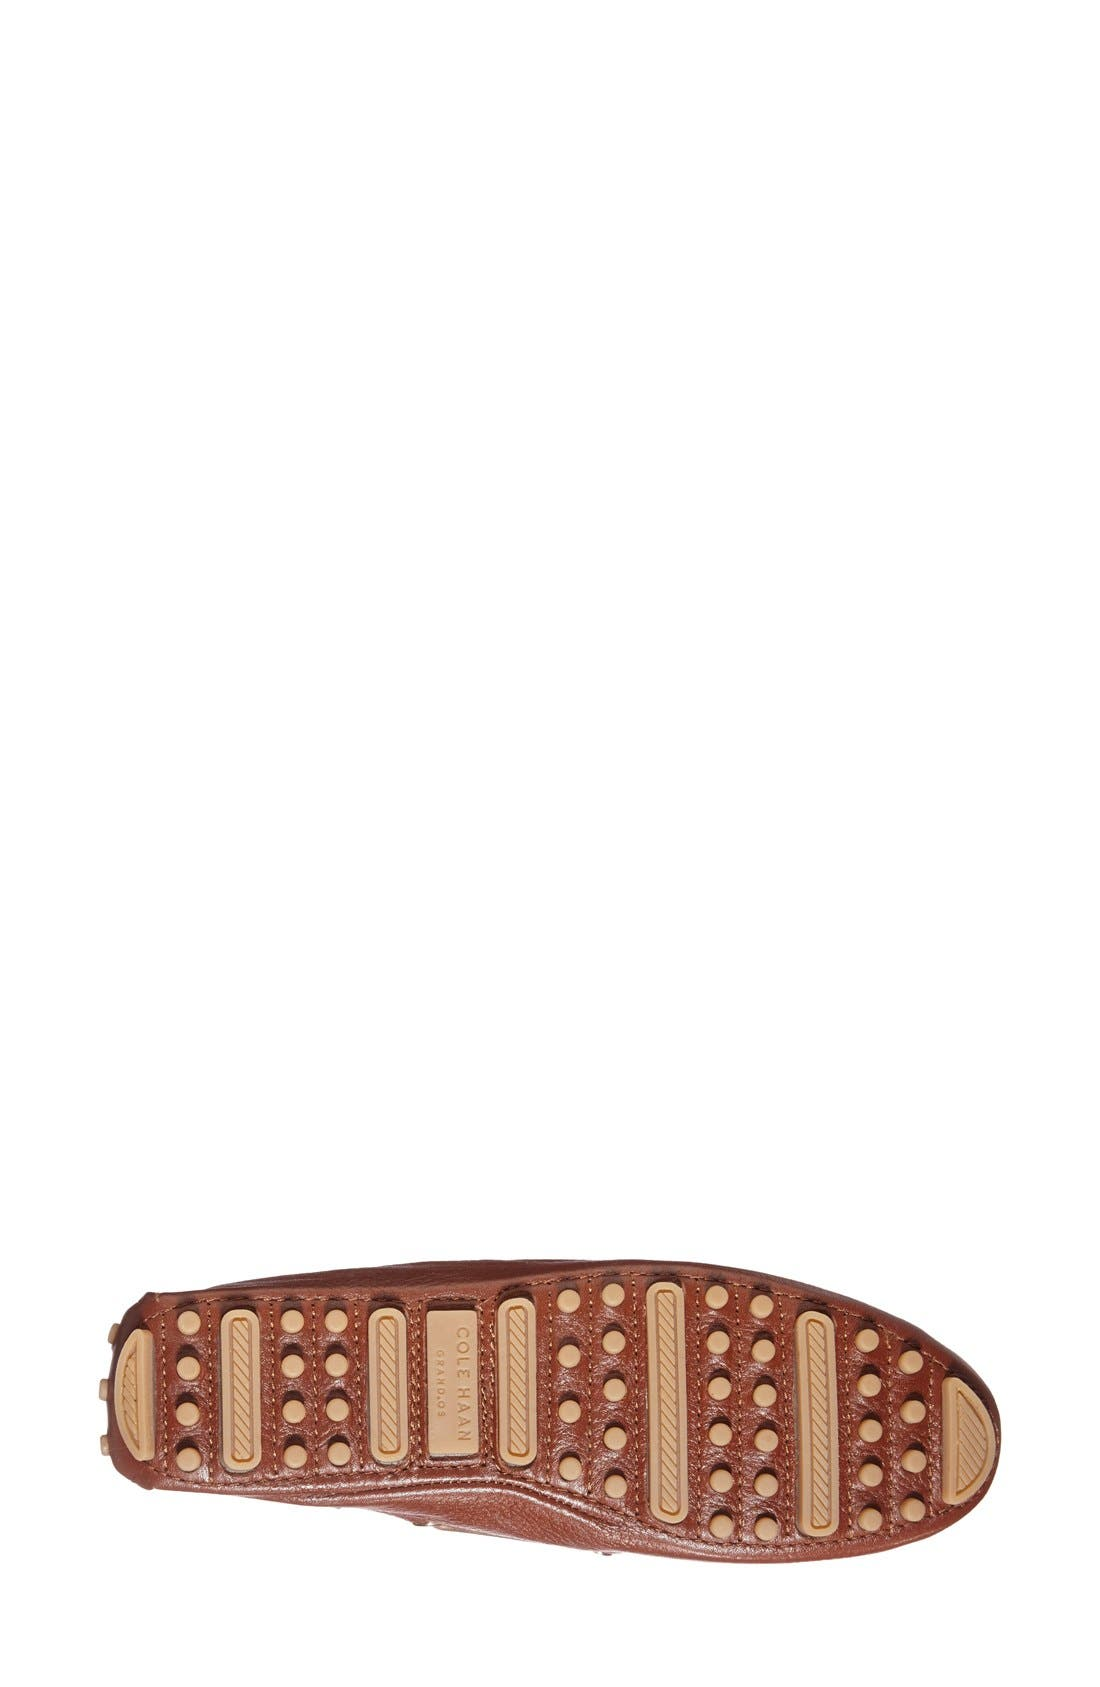 'Cary' Leather Driving Flat,                             Alternate thumbnail 5, color,                             Woodbury